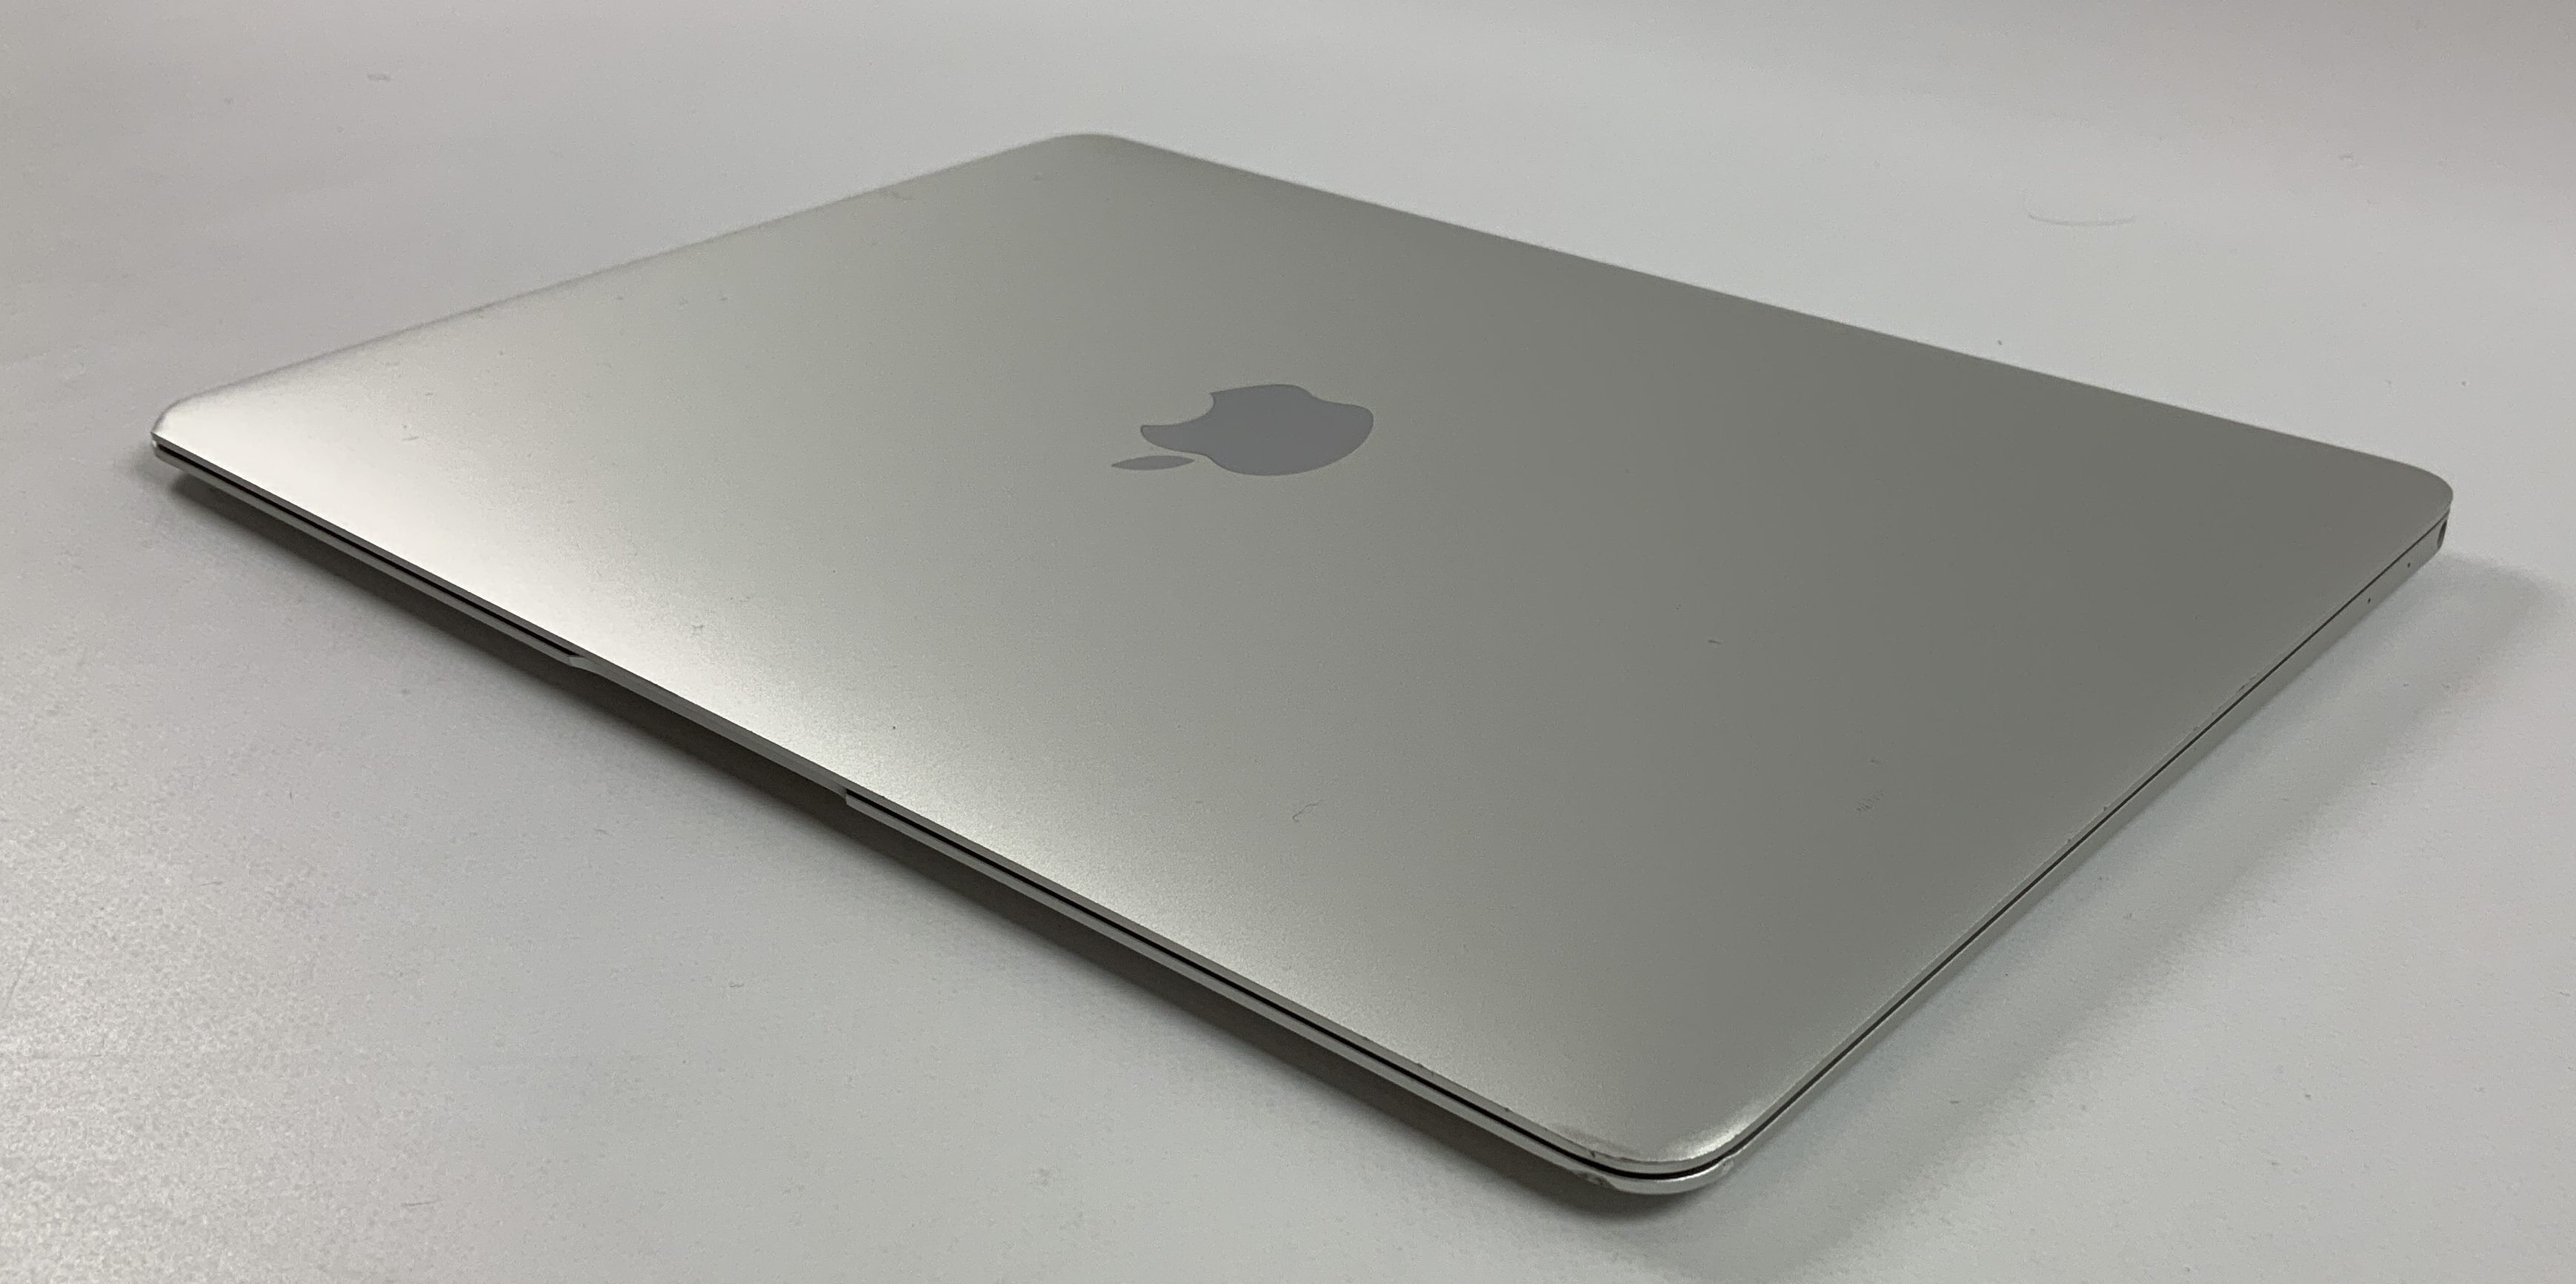 "MacBook 12"" Mid 2017 (Intel Core i5 1.3 GHz 8 GB RAM 512 GB SSD), Silver, Intel Core i5 1.3 GHz, 8 GB RAM, 512 GB SSD, Bild 2"